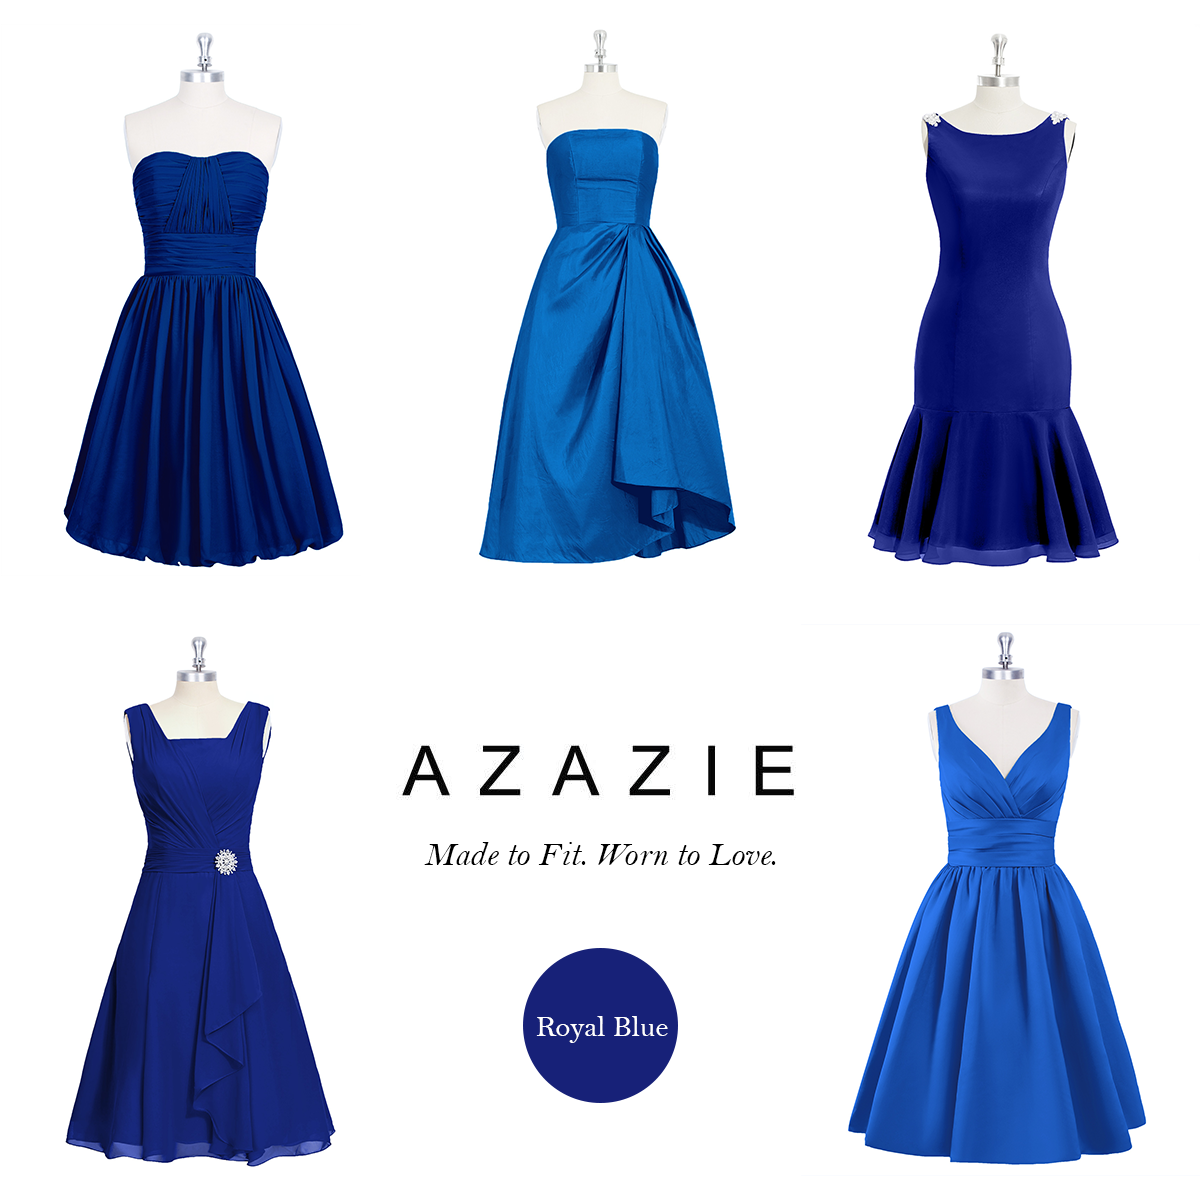 Based in San Francisco, AZAZIE is the ultimate online destination for custom bridesmaid dresses. Shop from 300+ styles in Royal Blue.